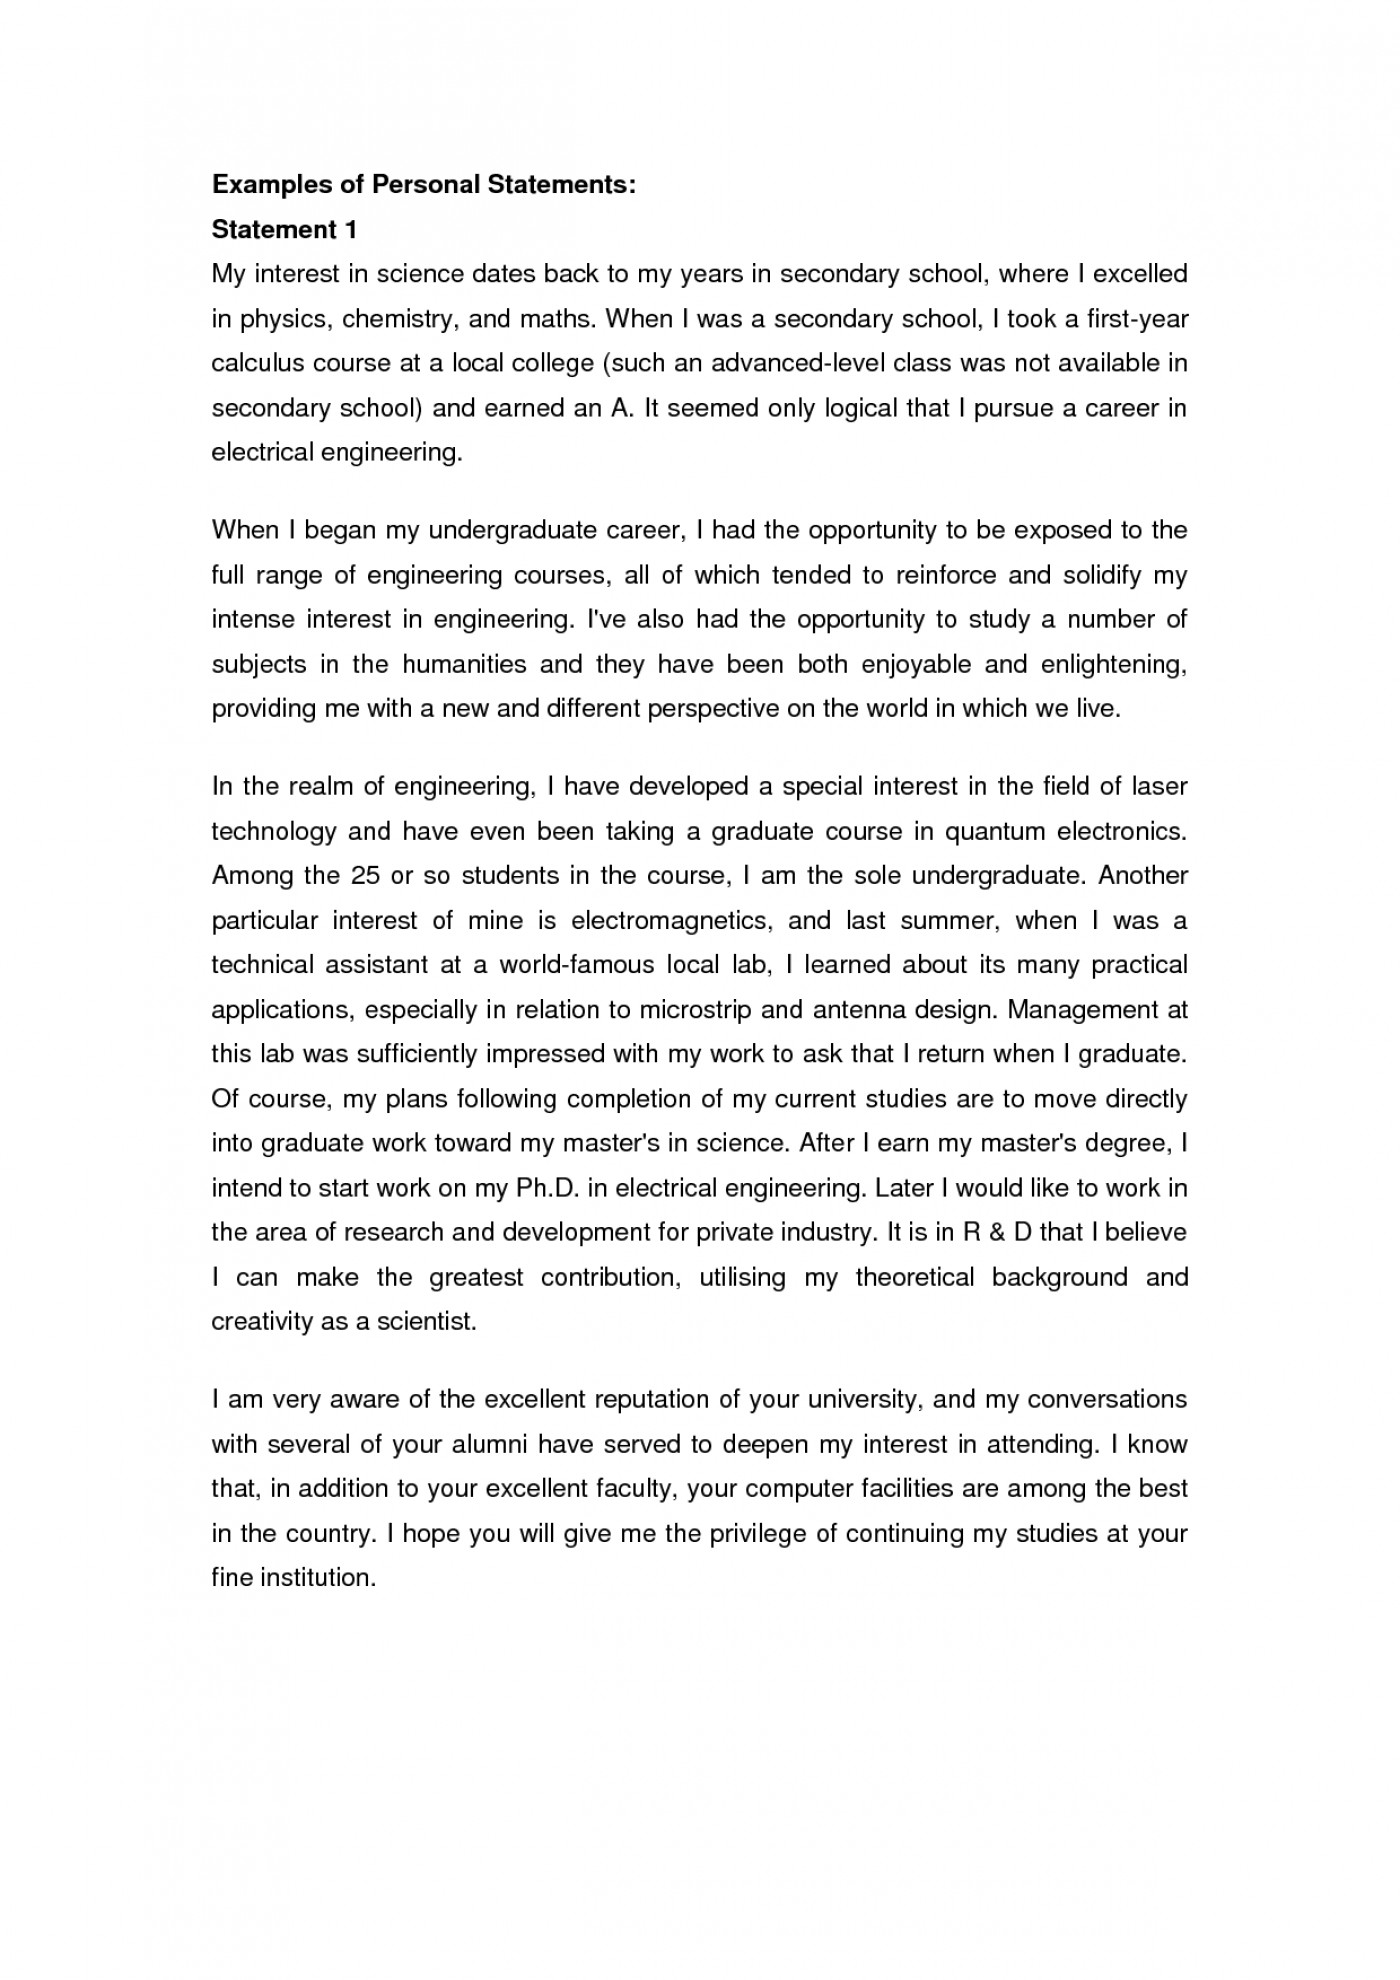 003 Personal Essay Samples Breathtaking Examples For College Good Topics High School 1400